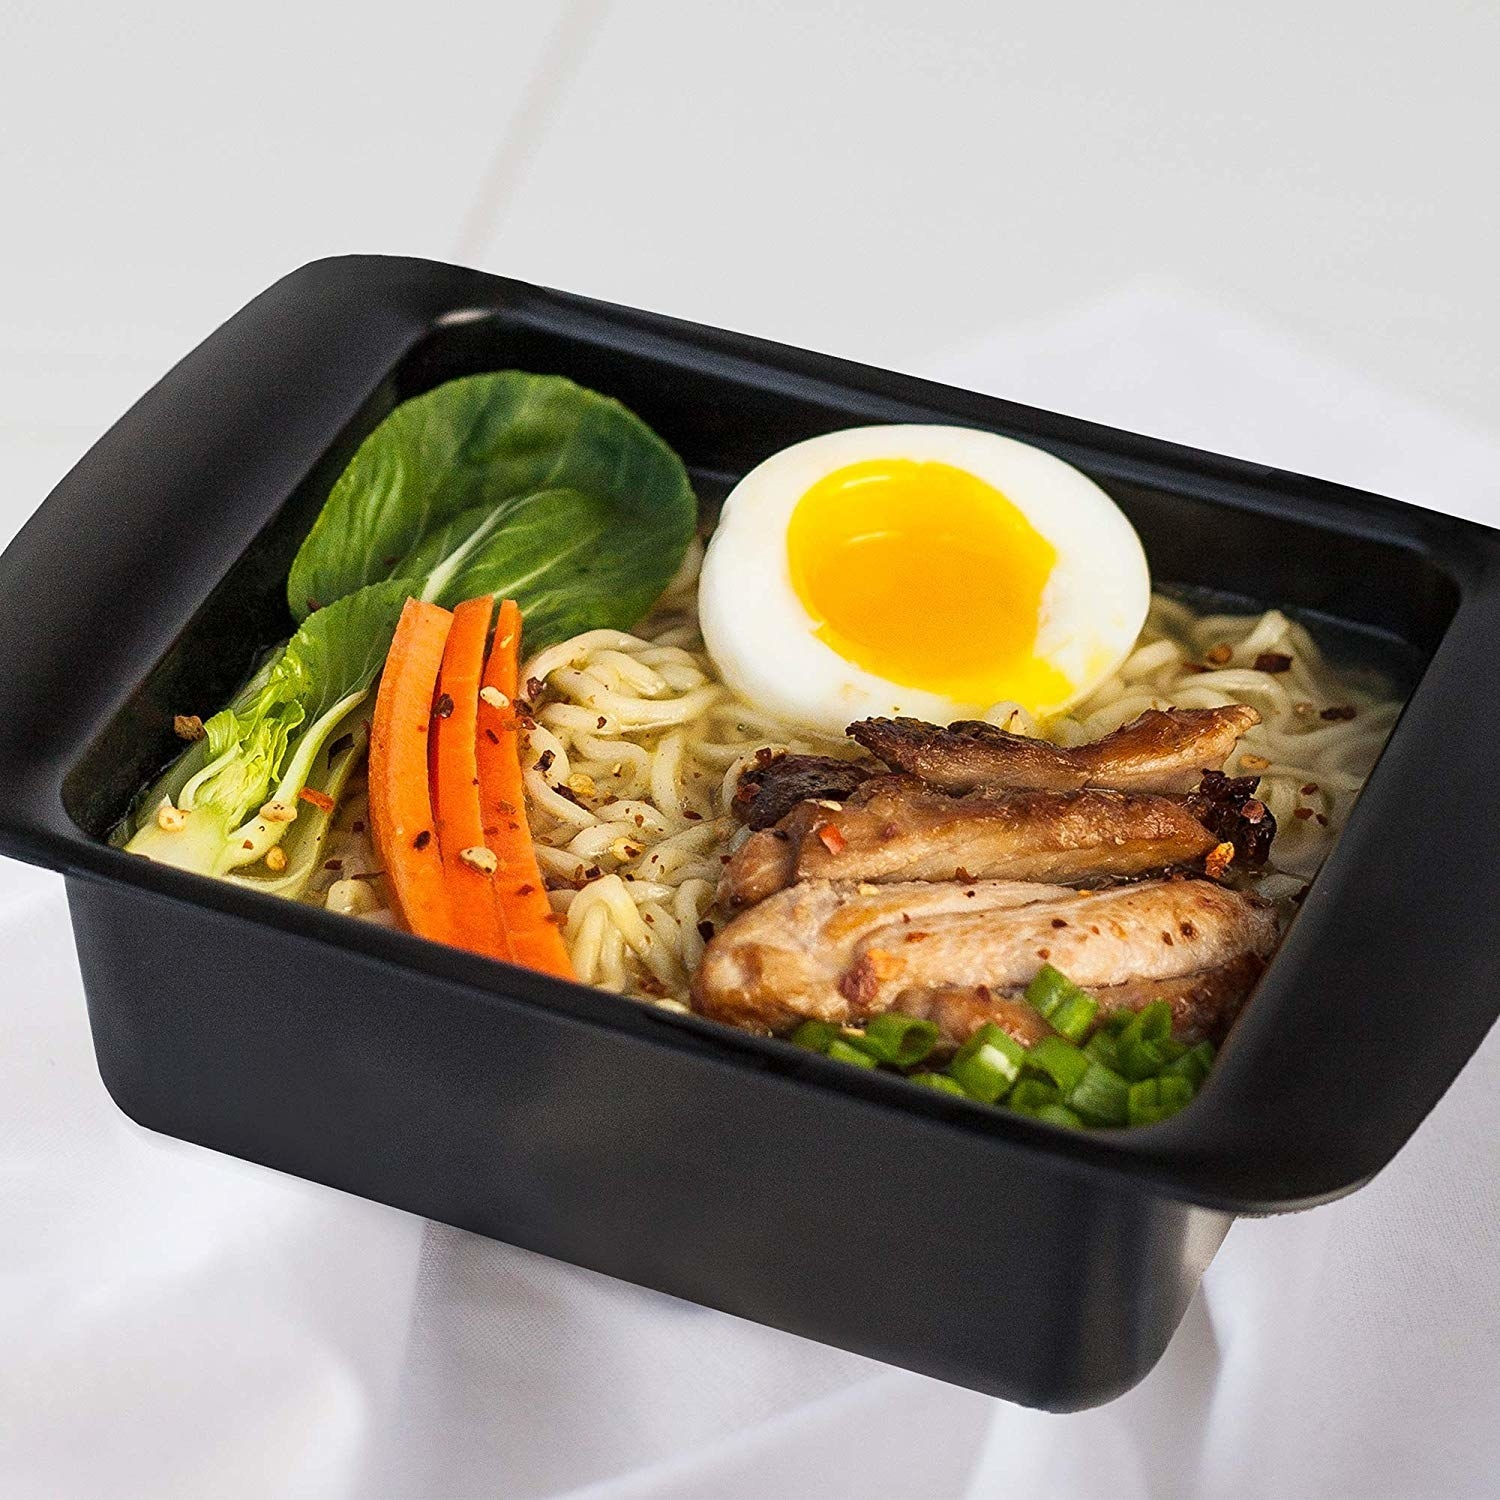 the cooker with ramen ingredients in it